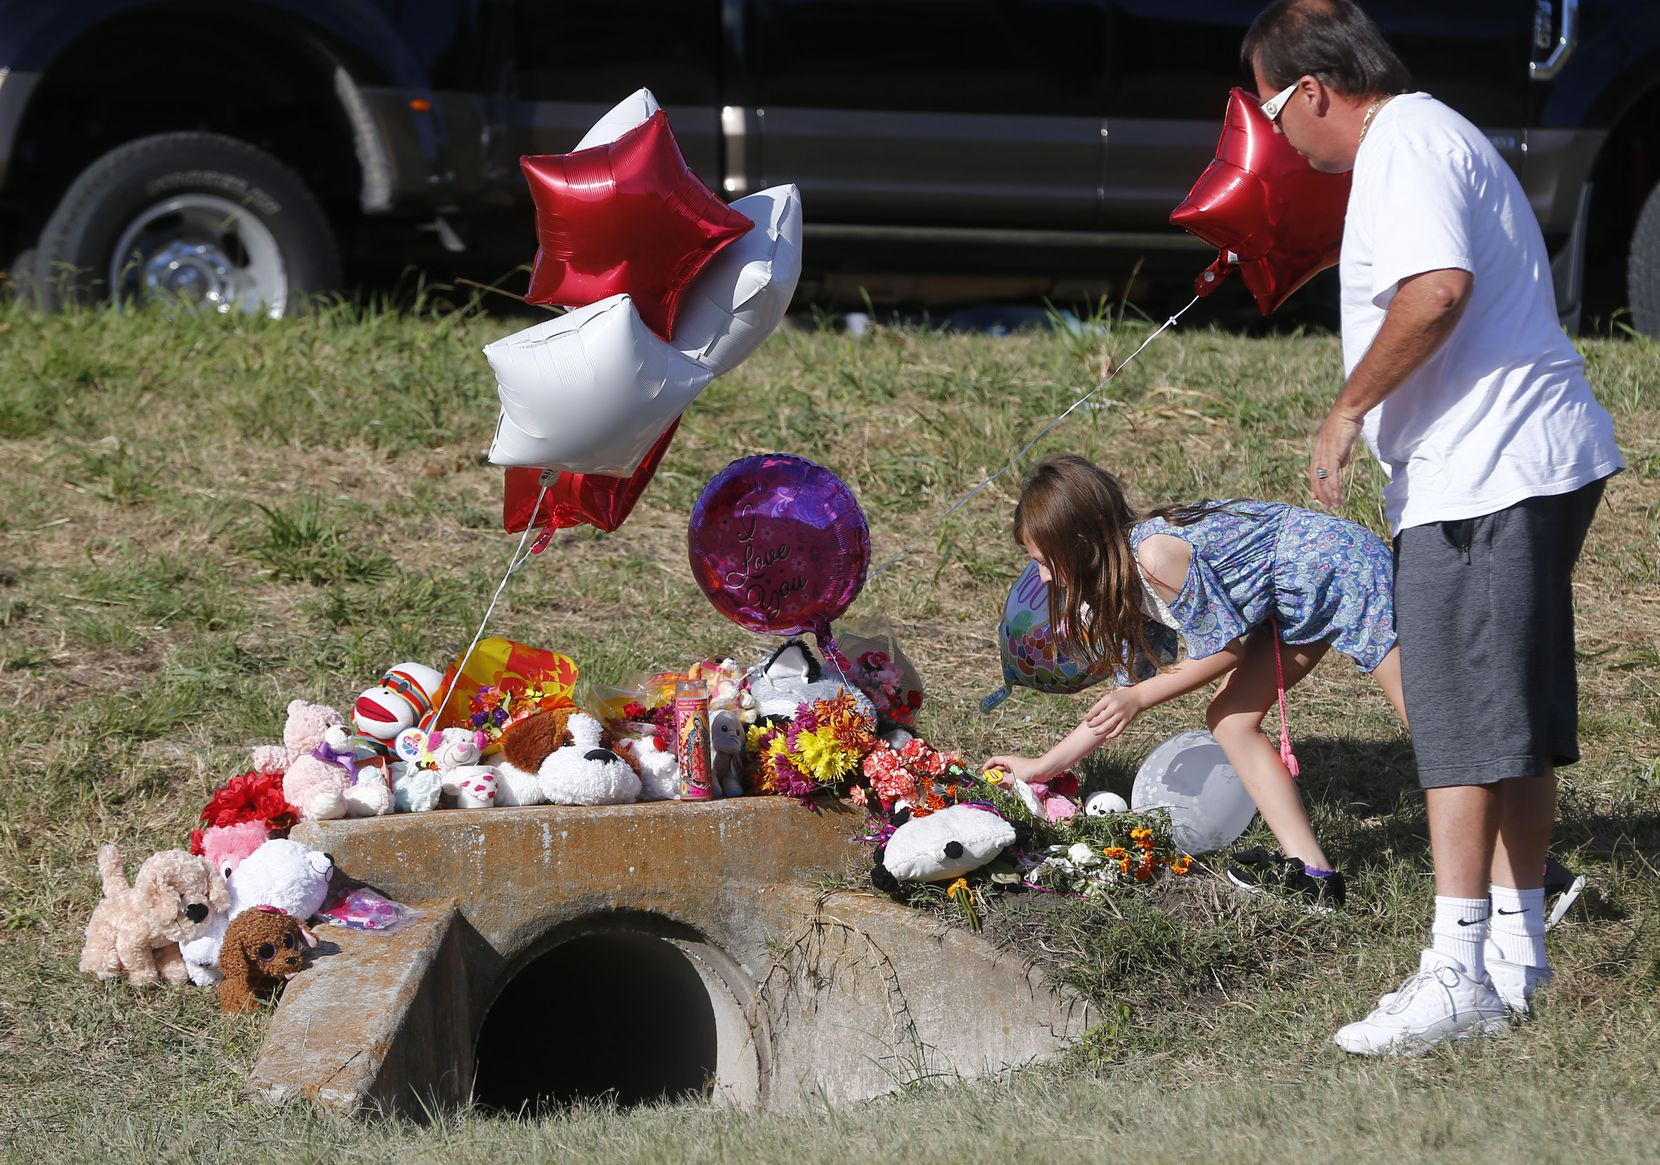 Miley Grahmann, 8, left a bear with a jar of lip balm (in case her lips get chapped in heaven) on Monday near  where the body of a small child was found Sunday morning. Miley was with her father, Patrick Grahmann.